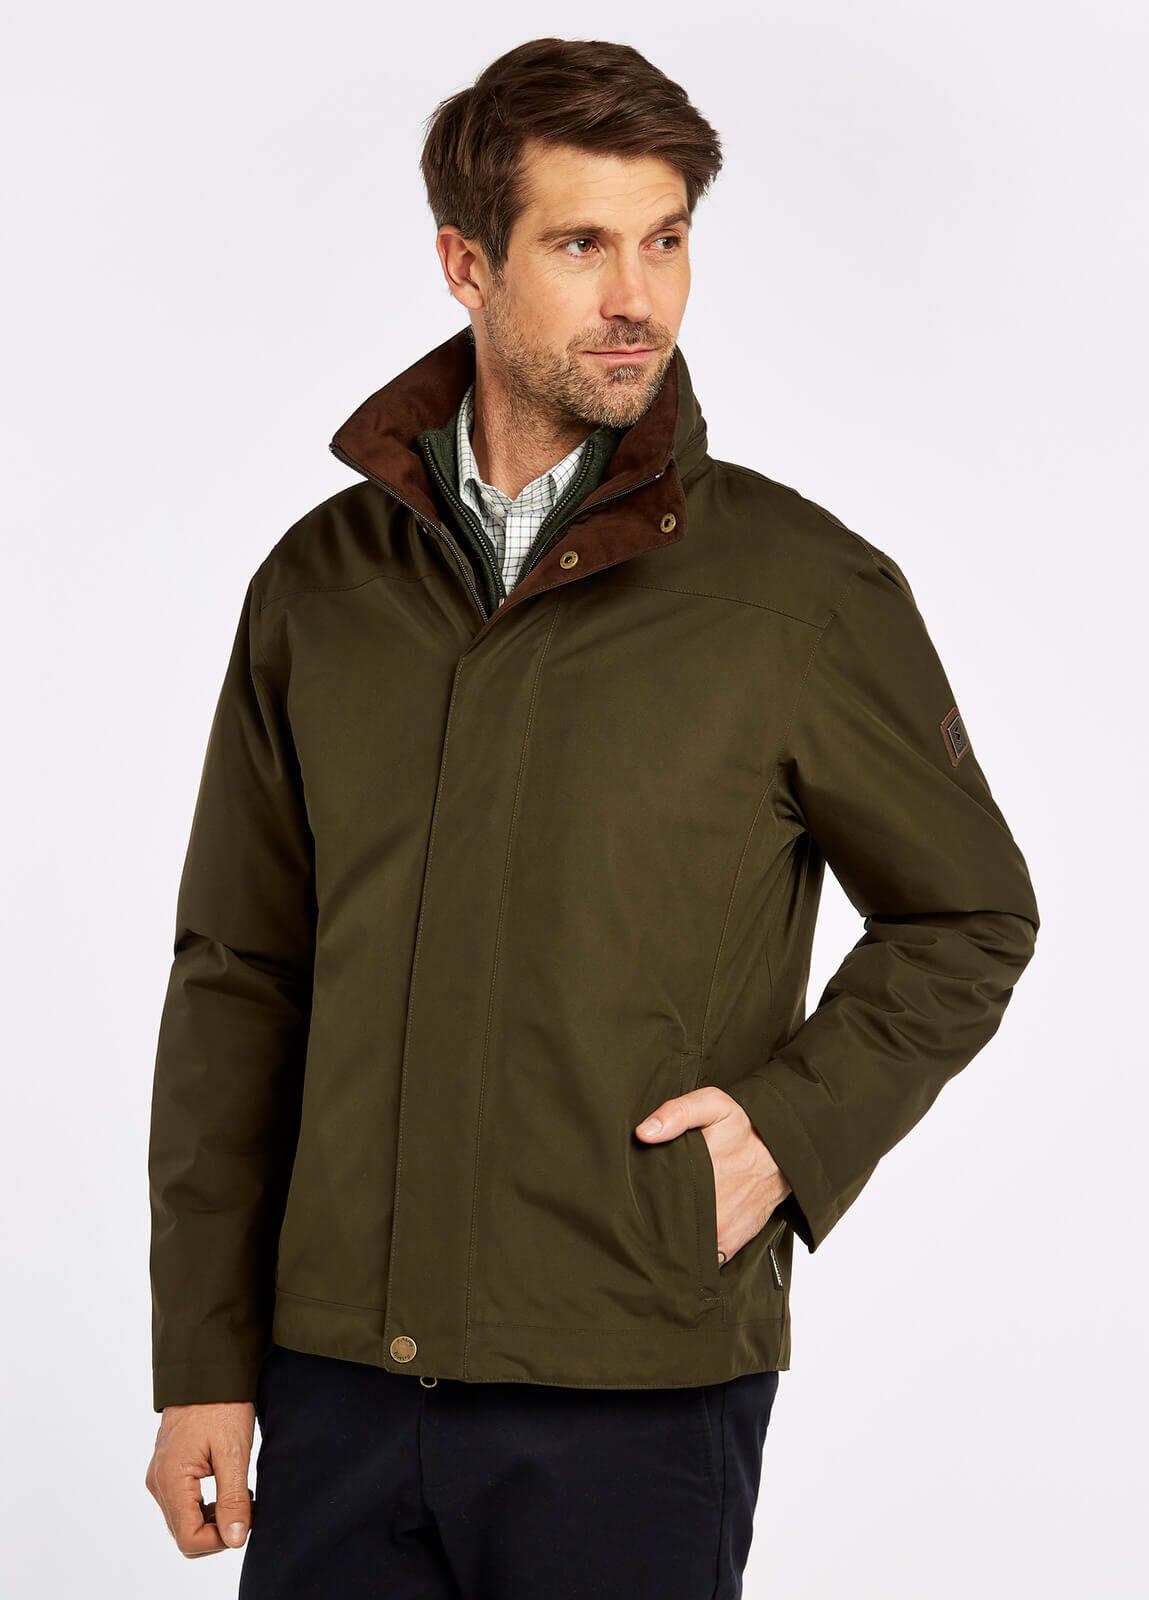 Dubarry_Palmerstown_Jacket_Olive_on_model